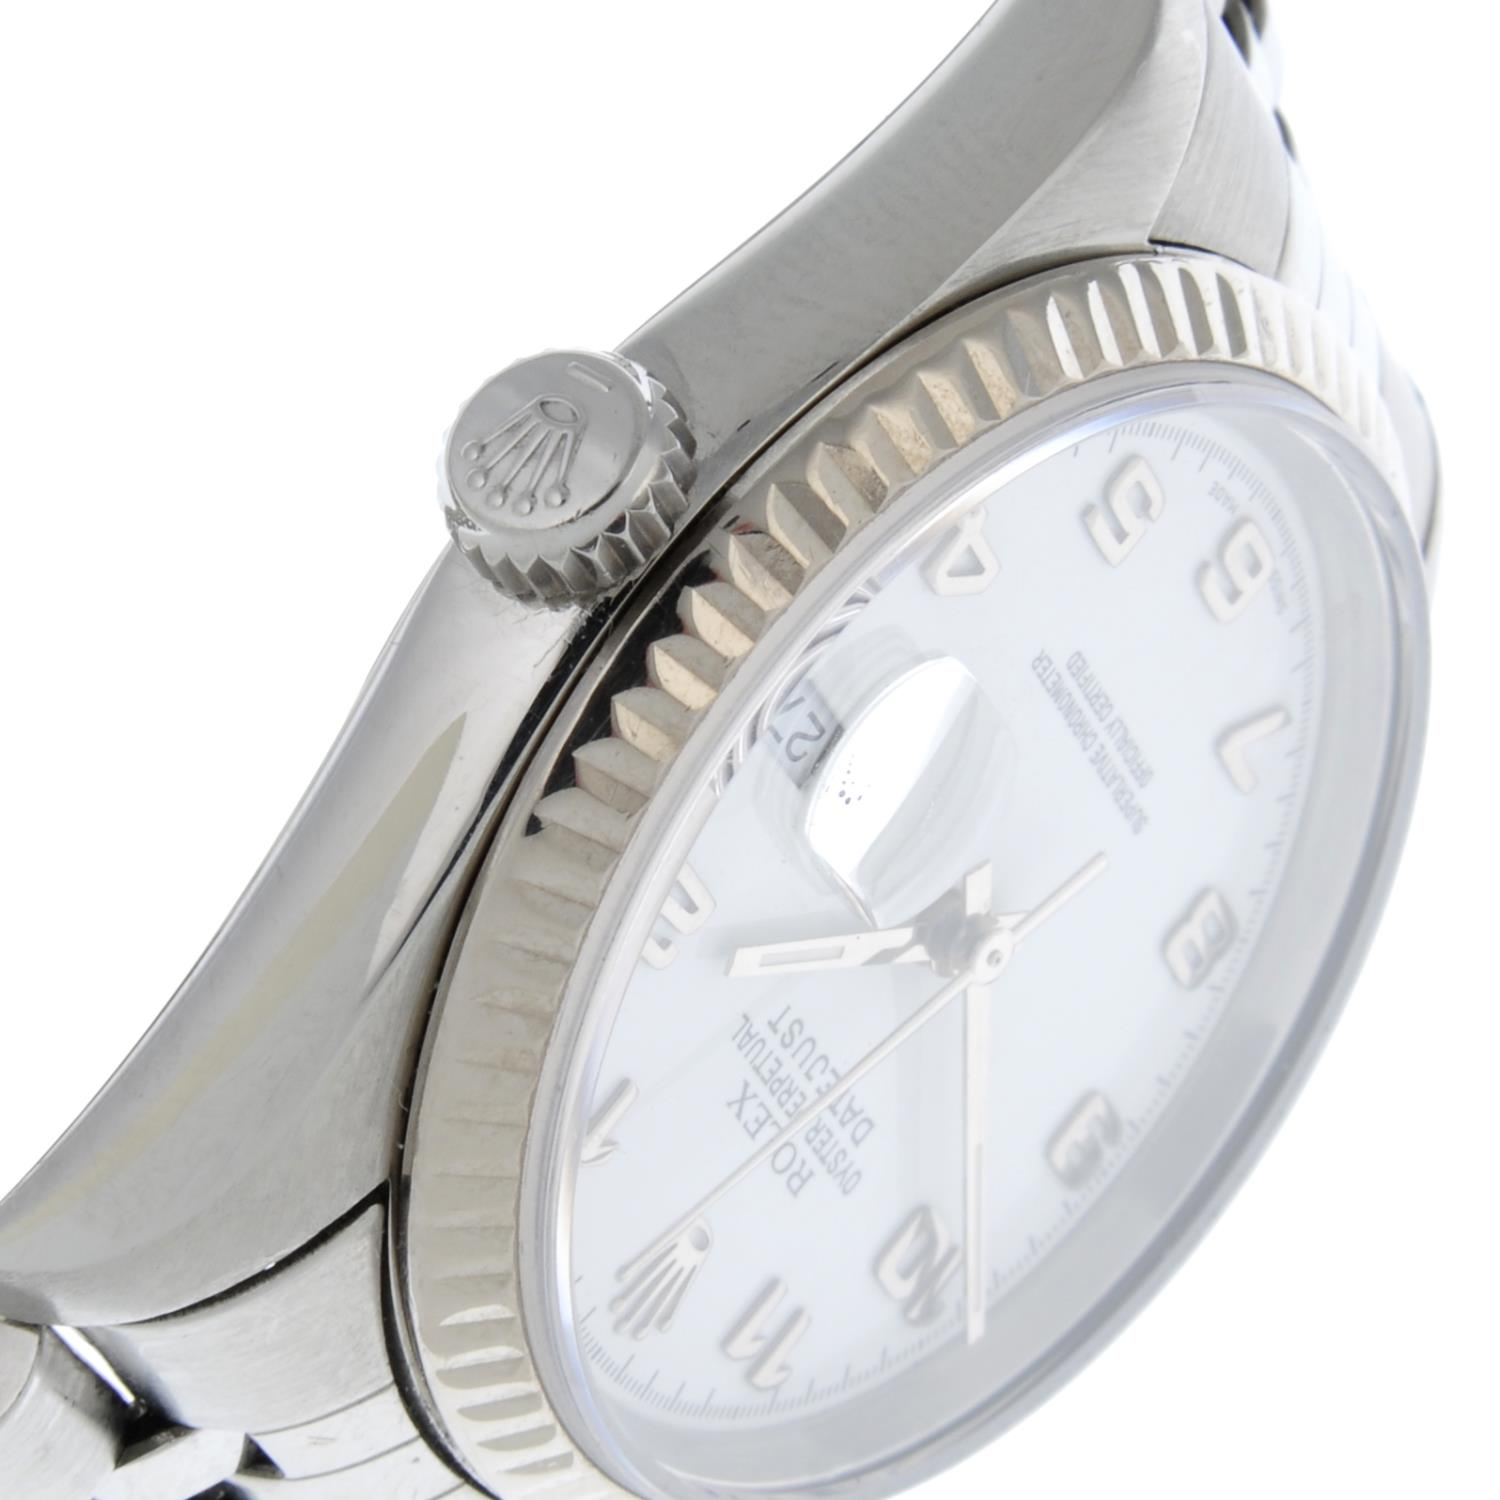 ROLEX - an Oyster Perpetual Datejust bracelet watch. - Image 5 of 6